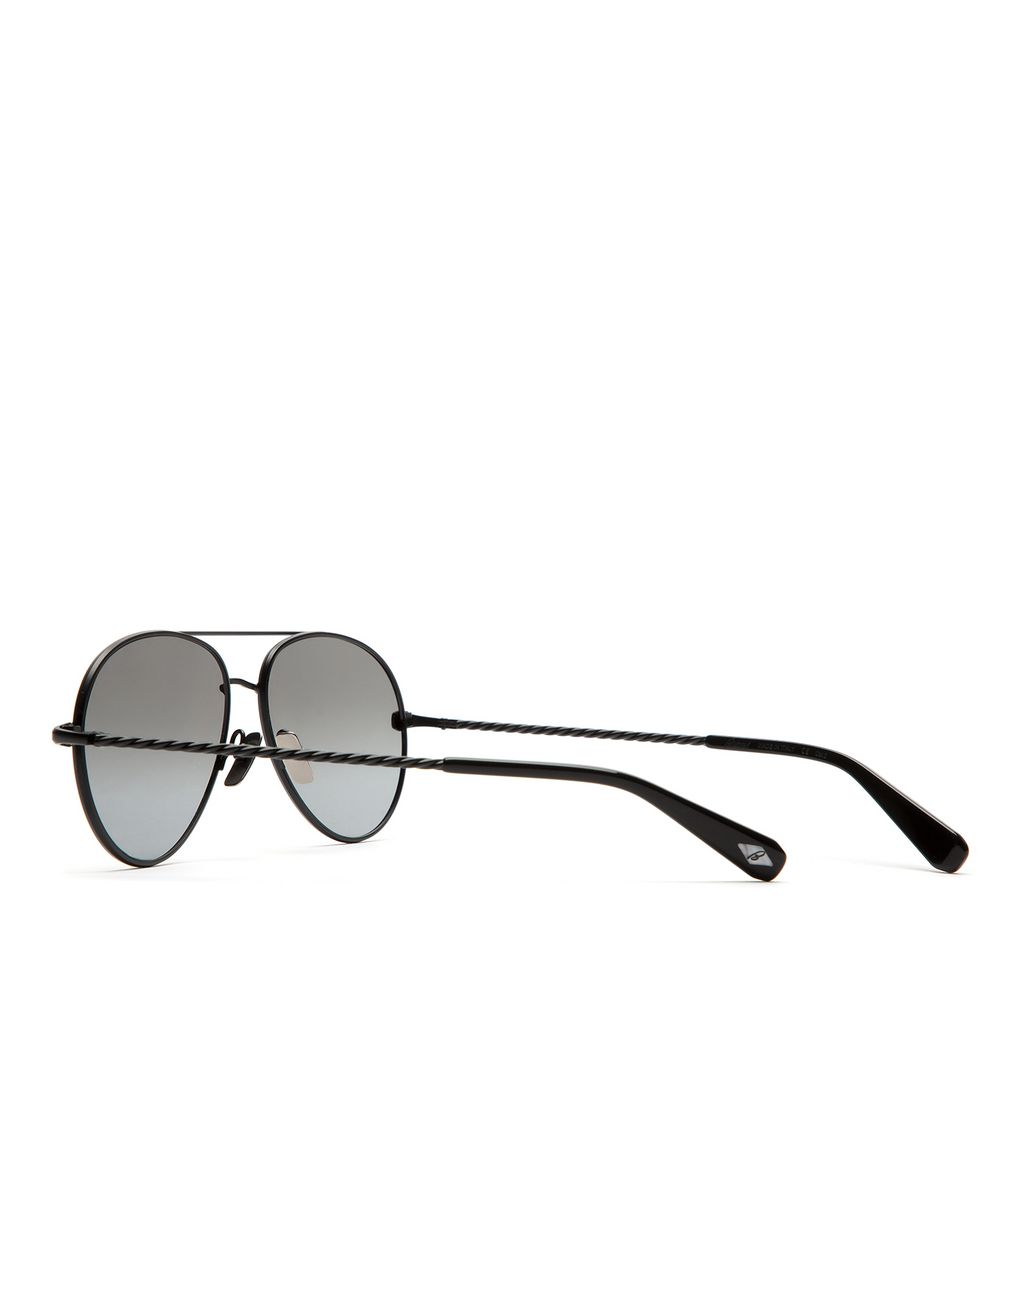 BRIONI Silver Black Aviator Sunglasses with Grey Lenses Sunglasses Man d